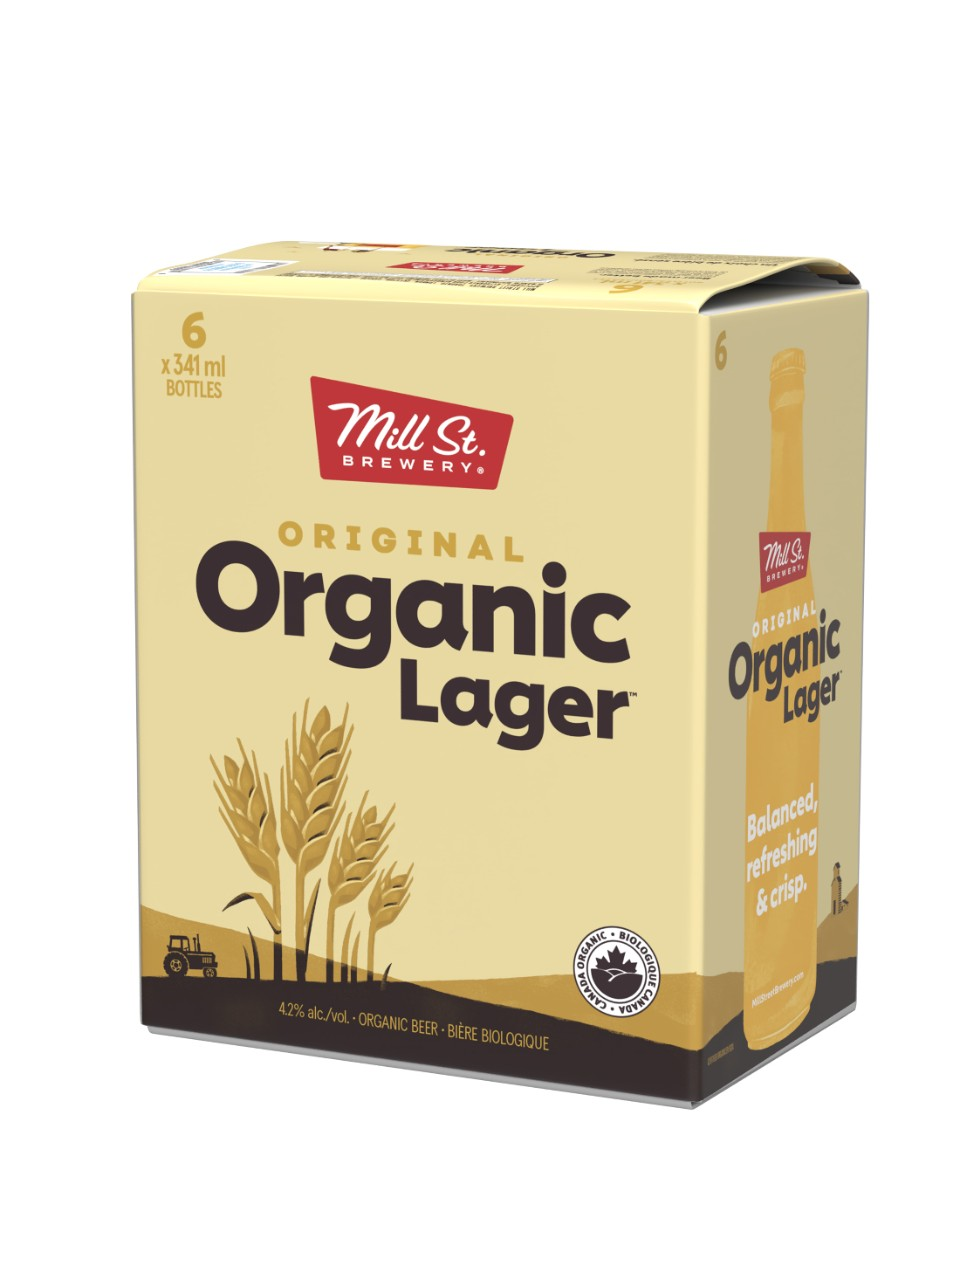 Image for Mill Street Original Organic Lager from LCBO